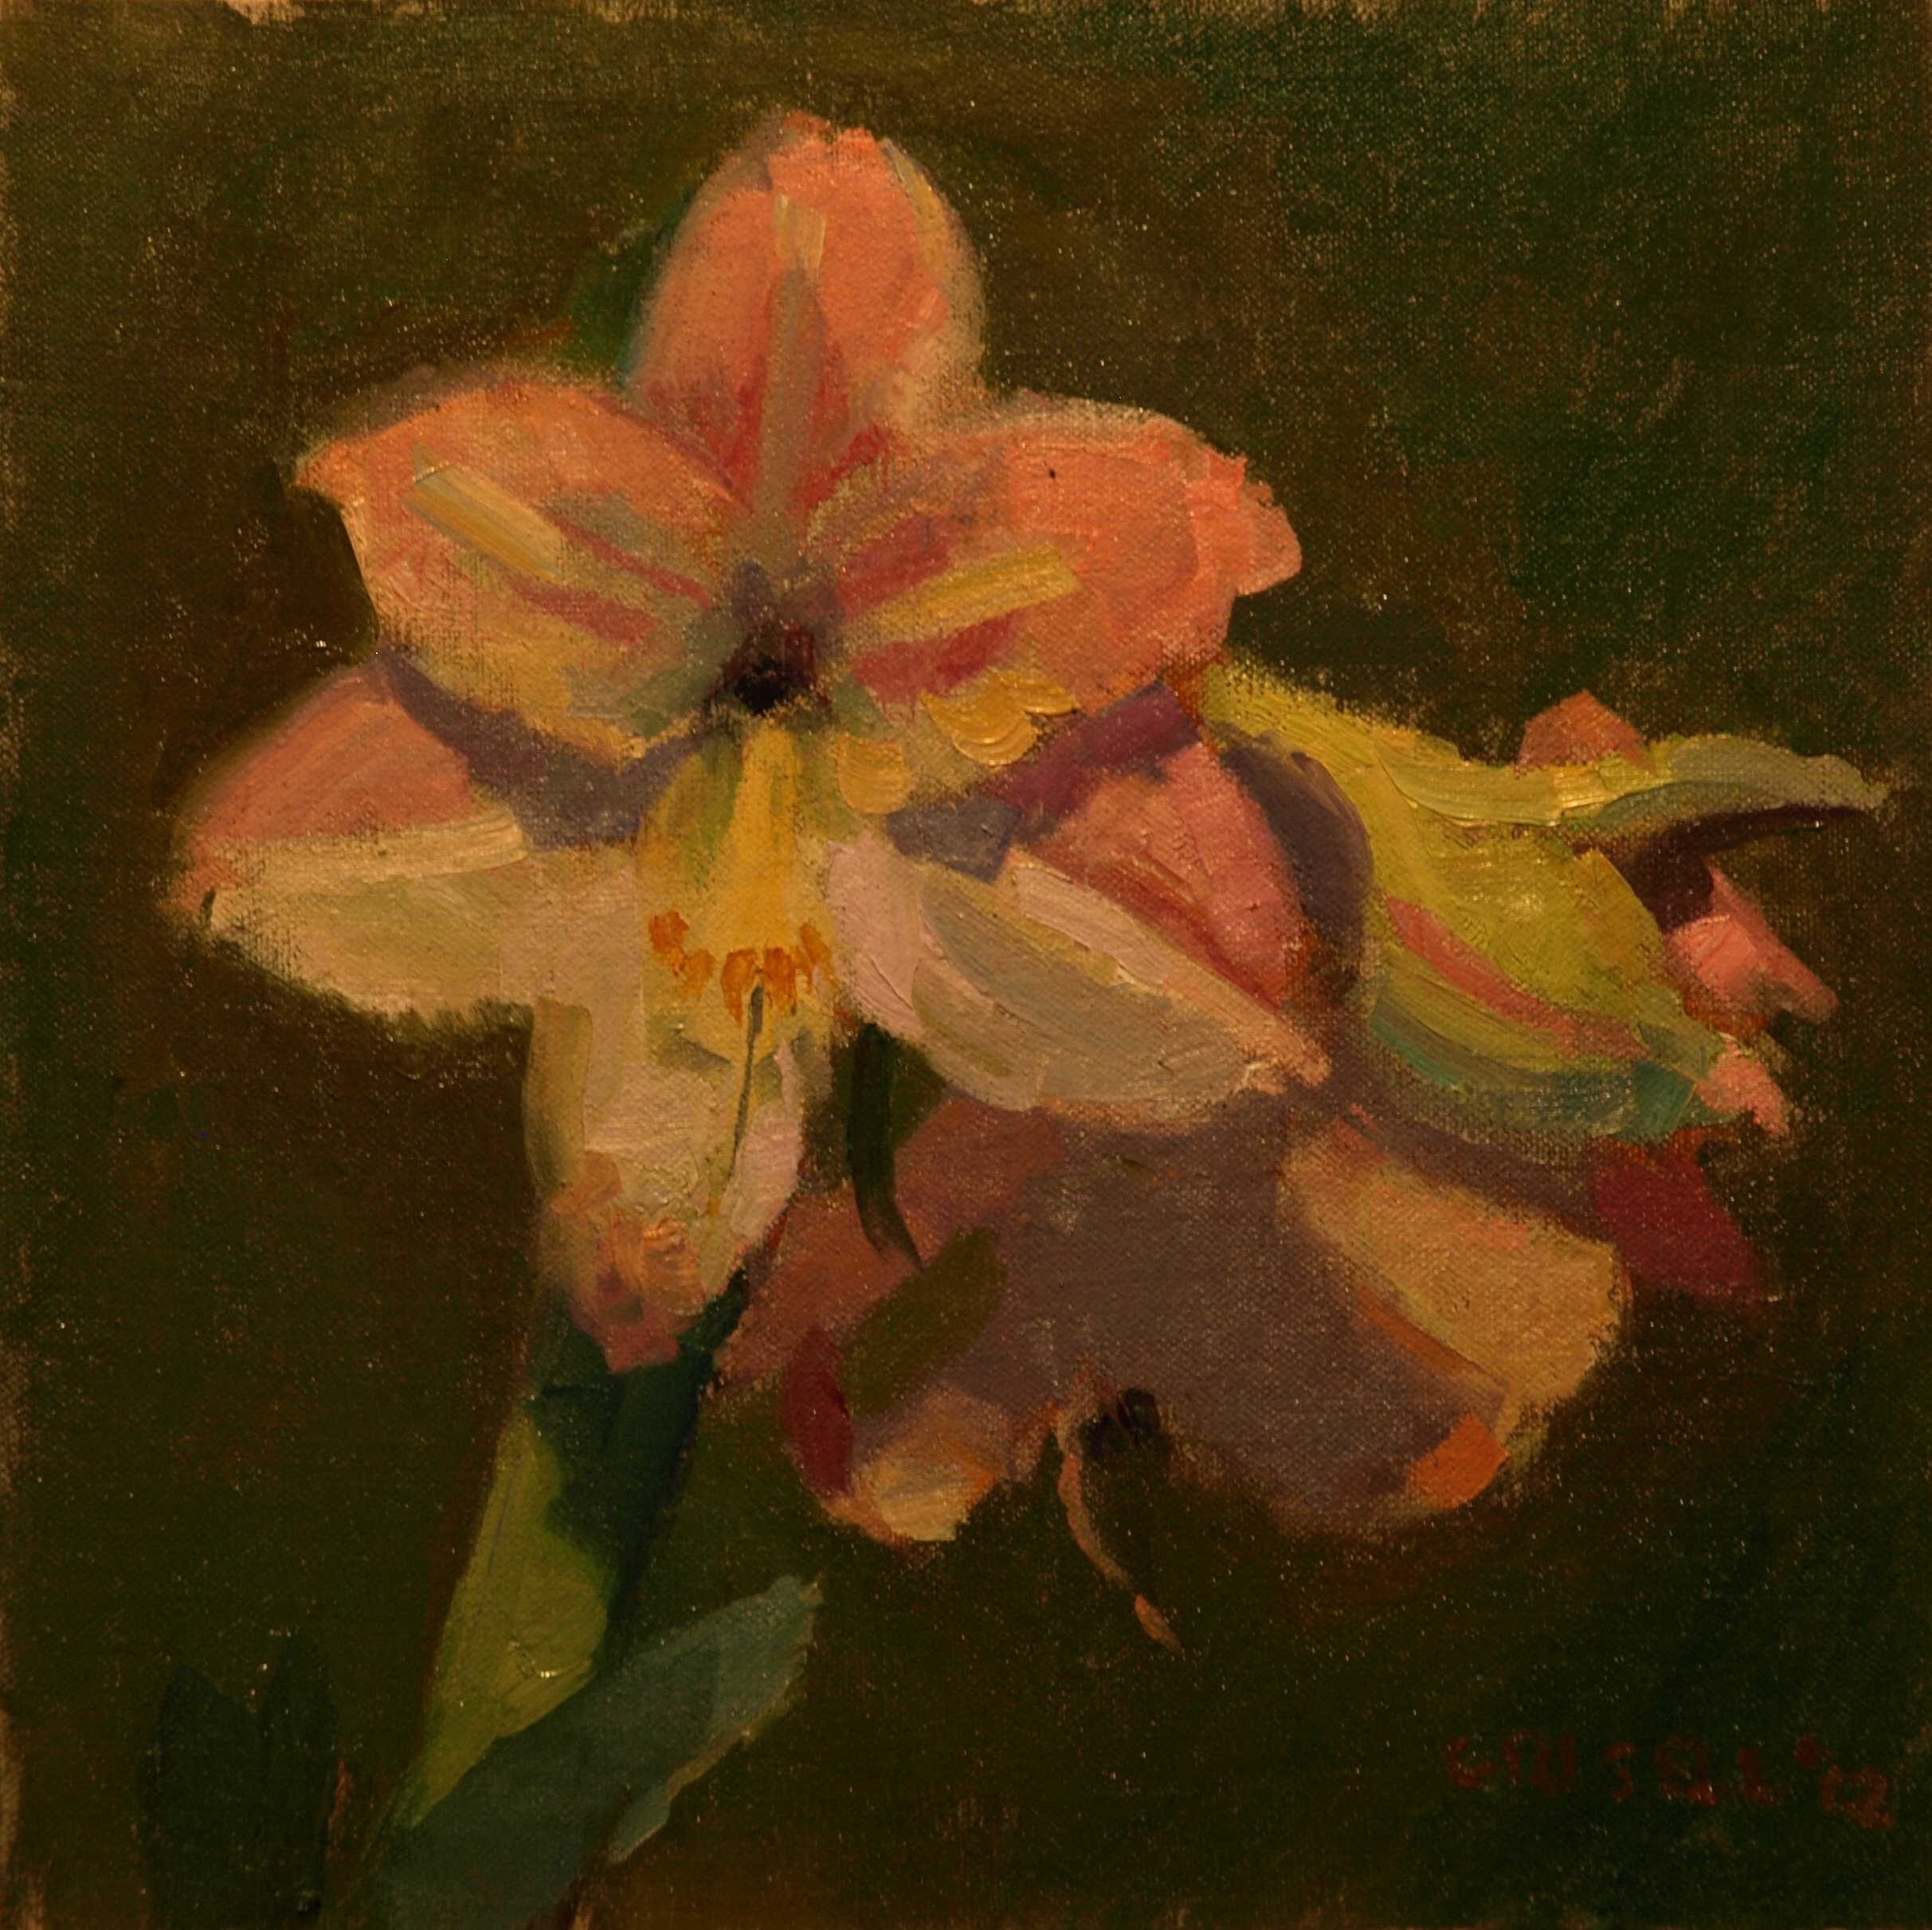 Pink and Green, Oil on Canvas on Panel, 12 x 12 Inches, by Susan Grisell, $250